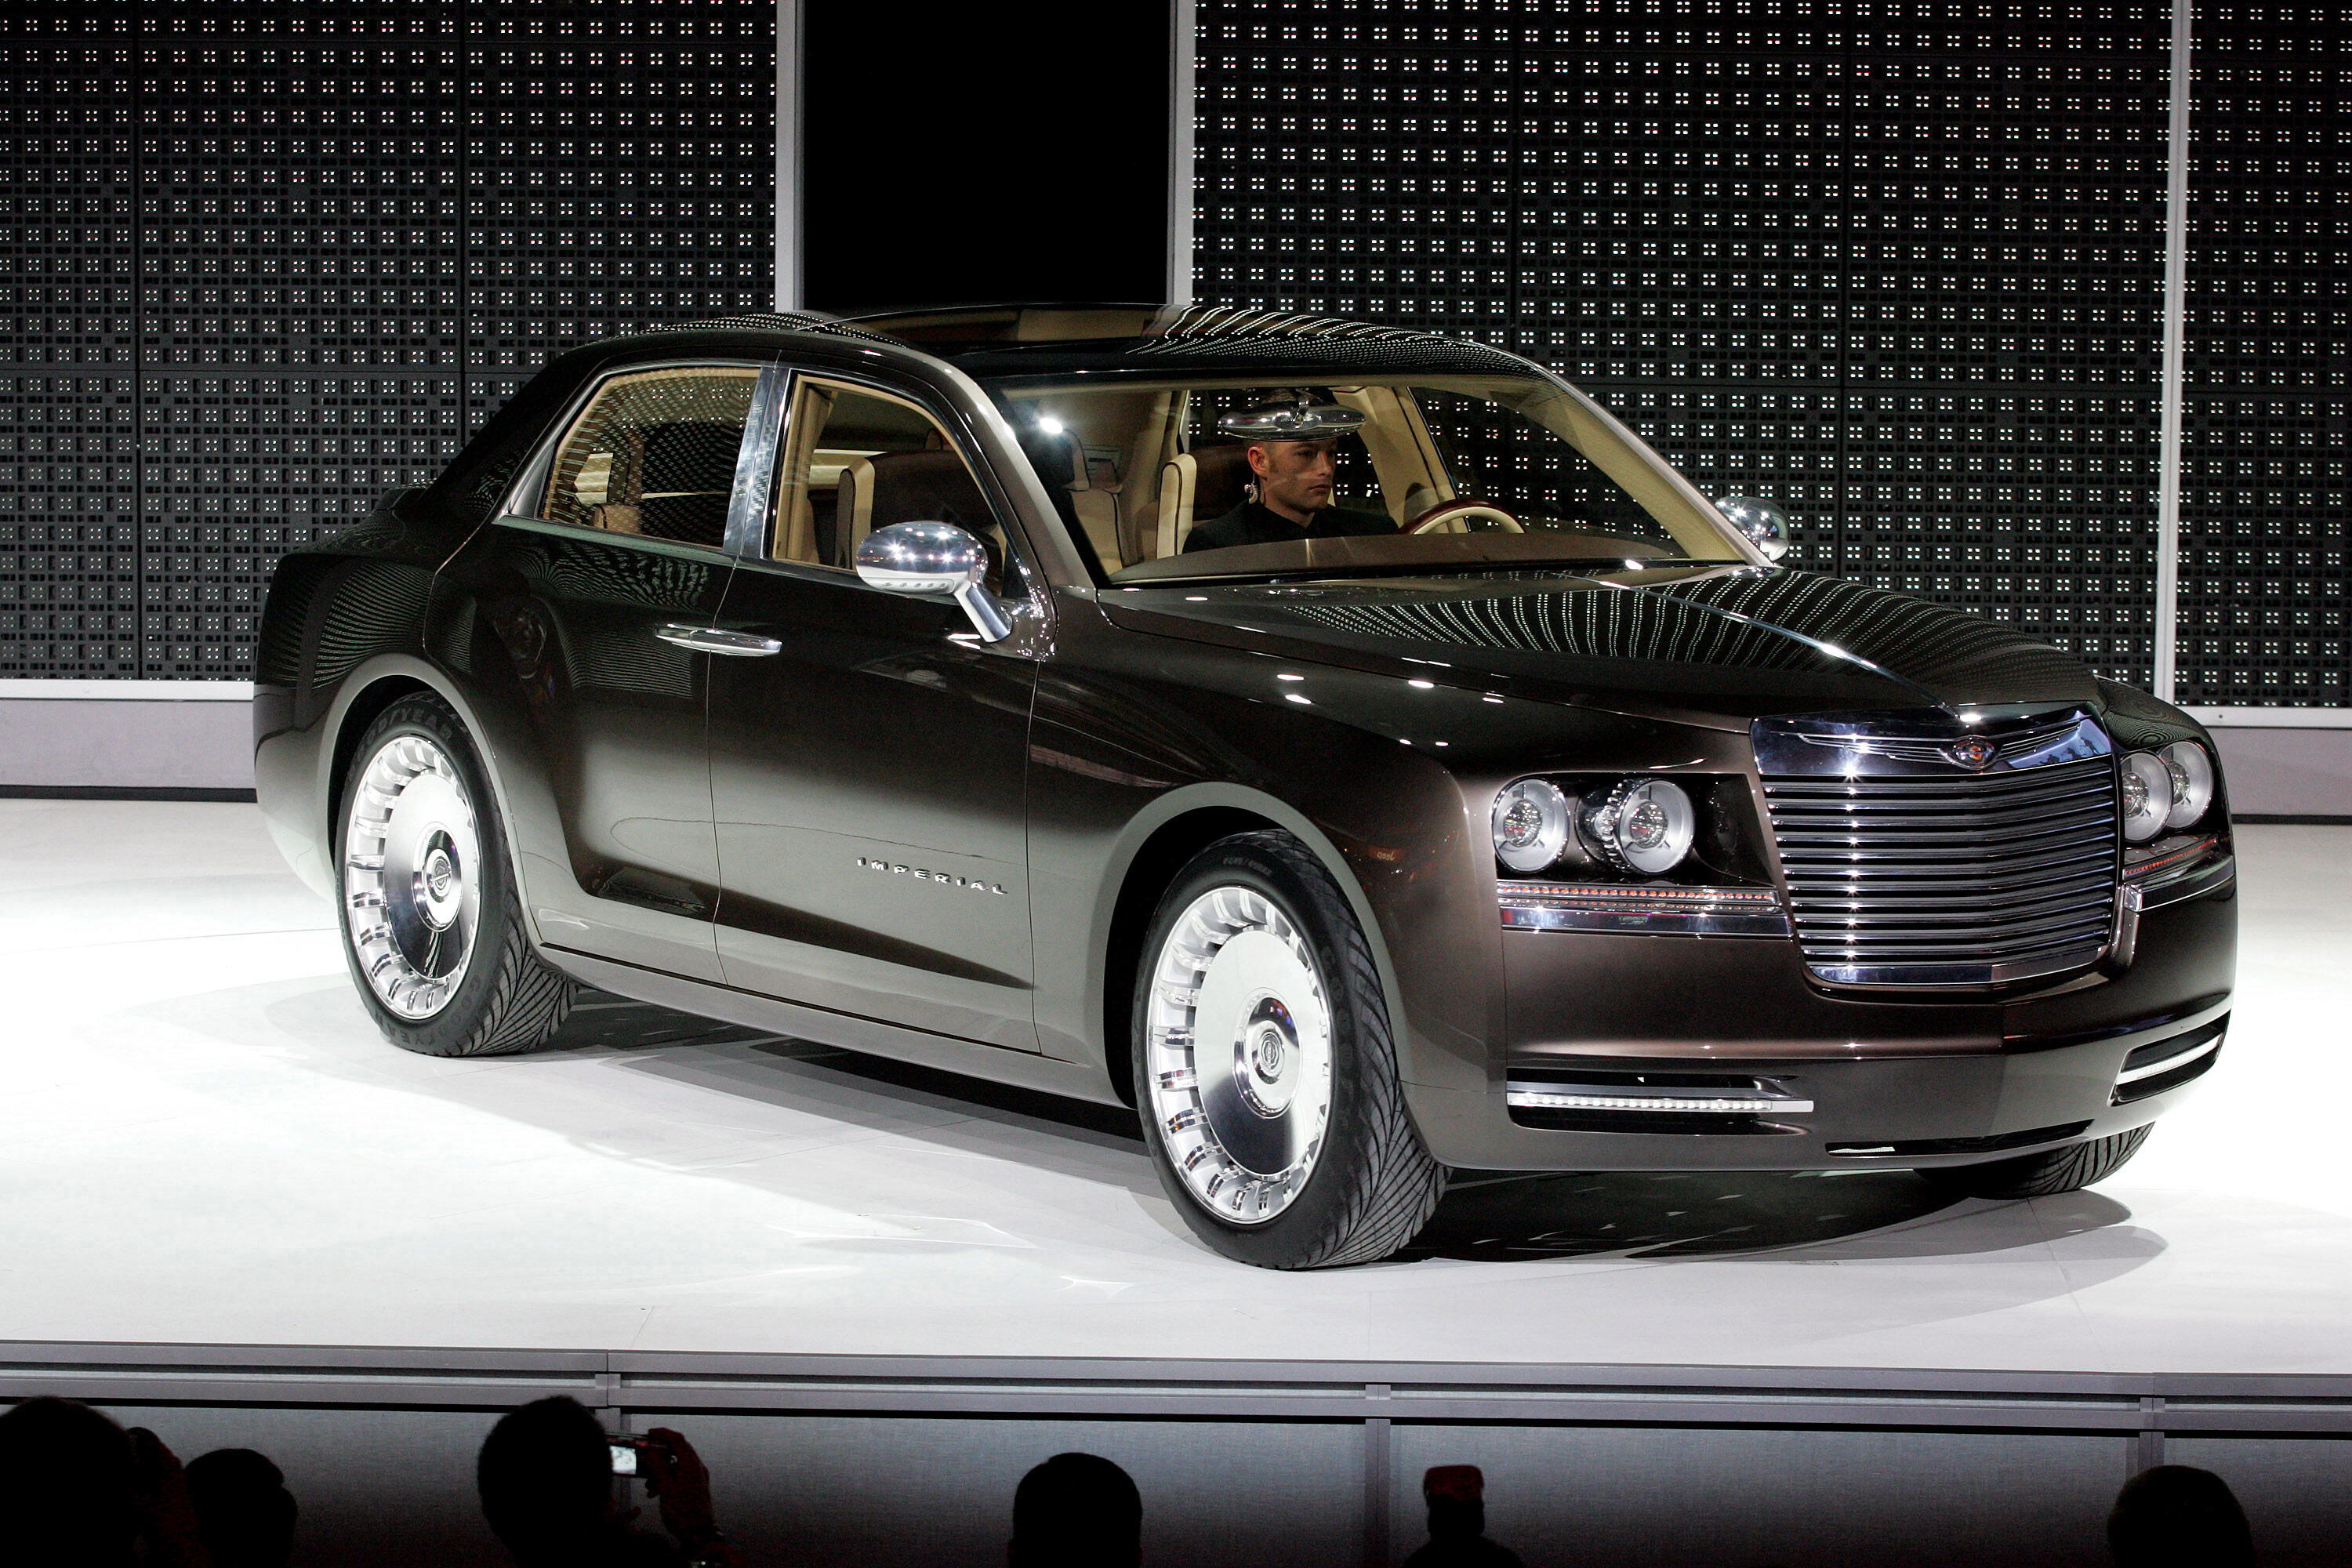 2006 Chrysler Imperial Concept